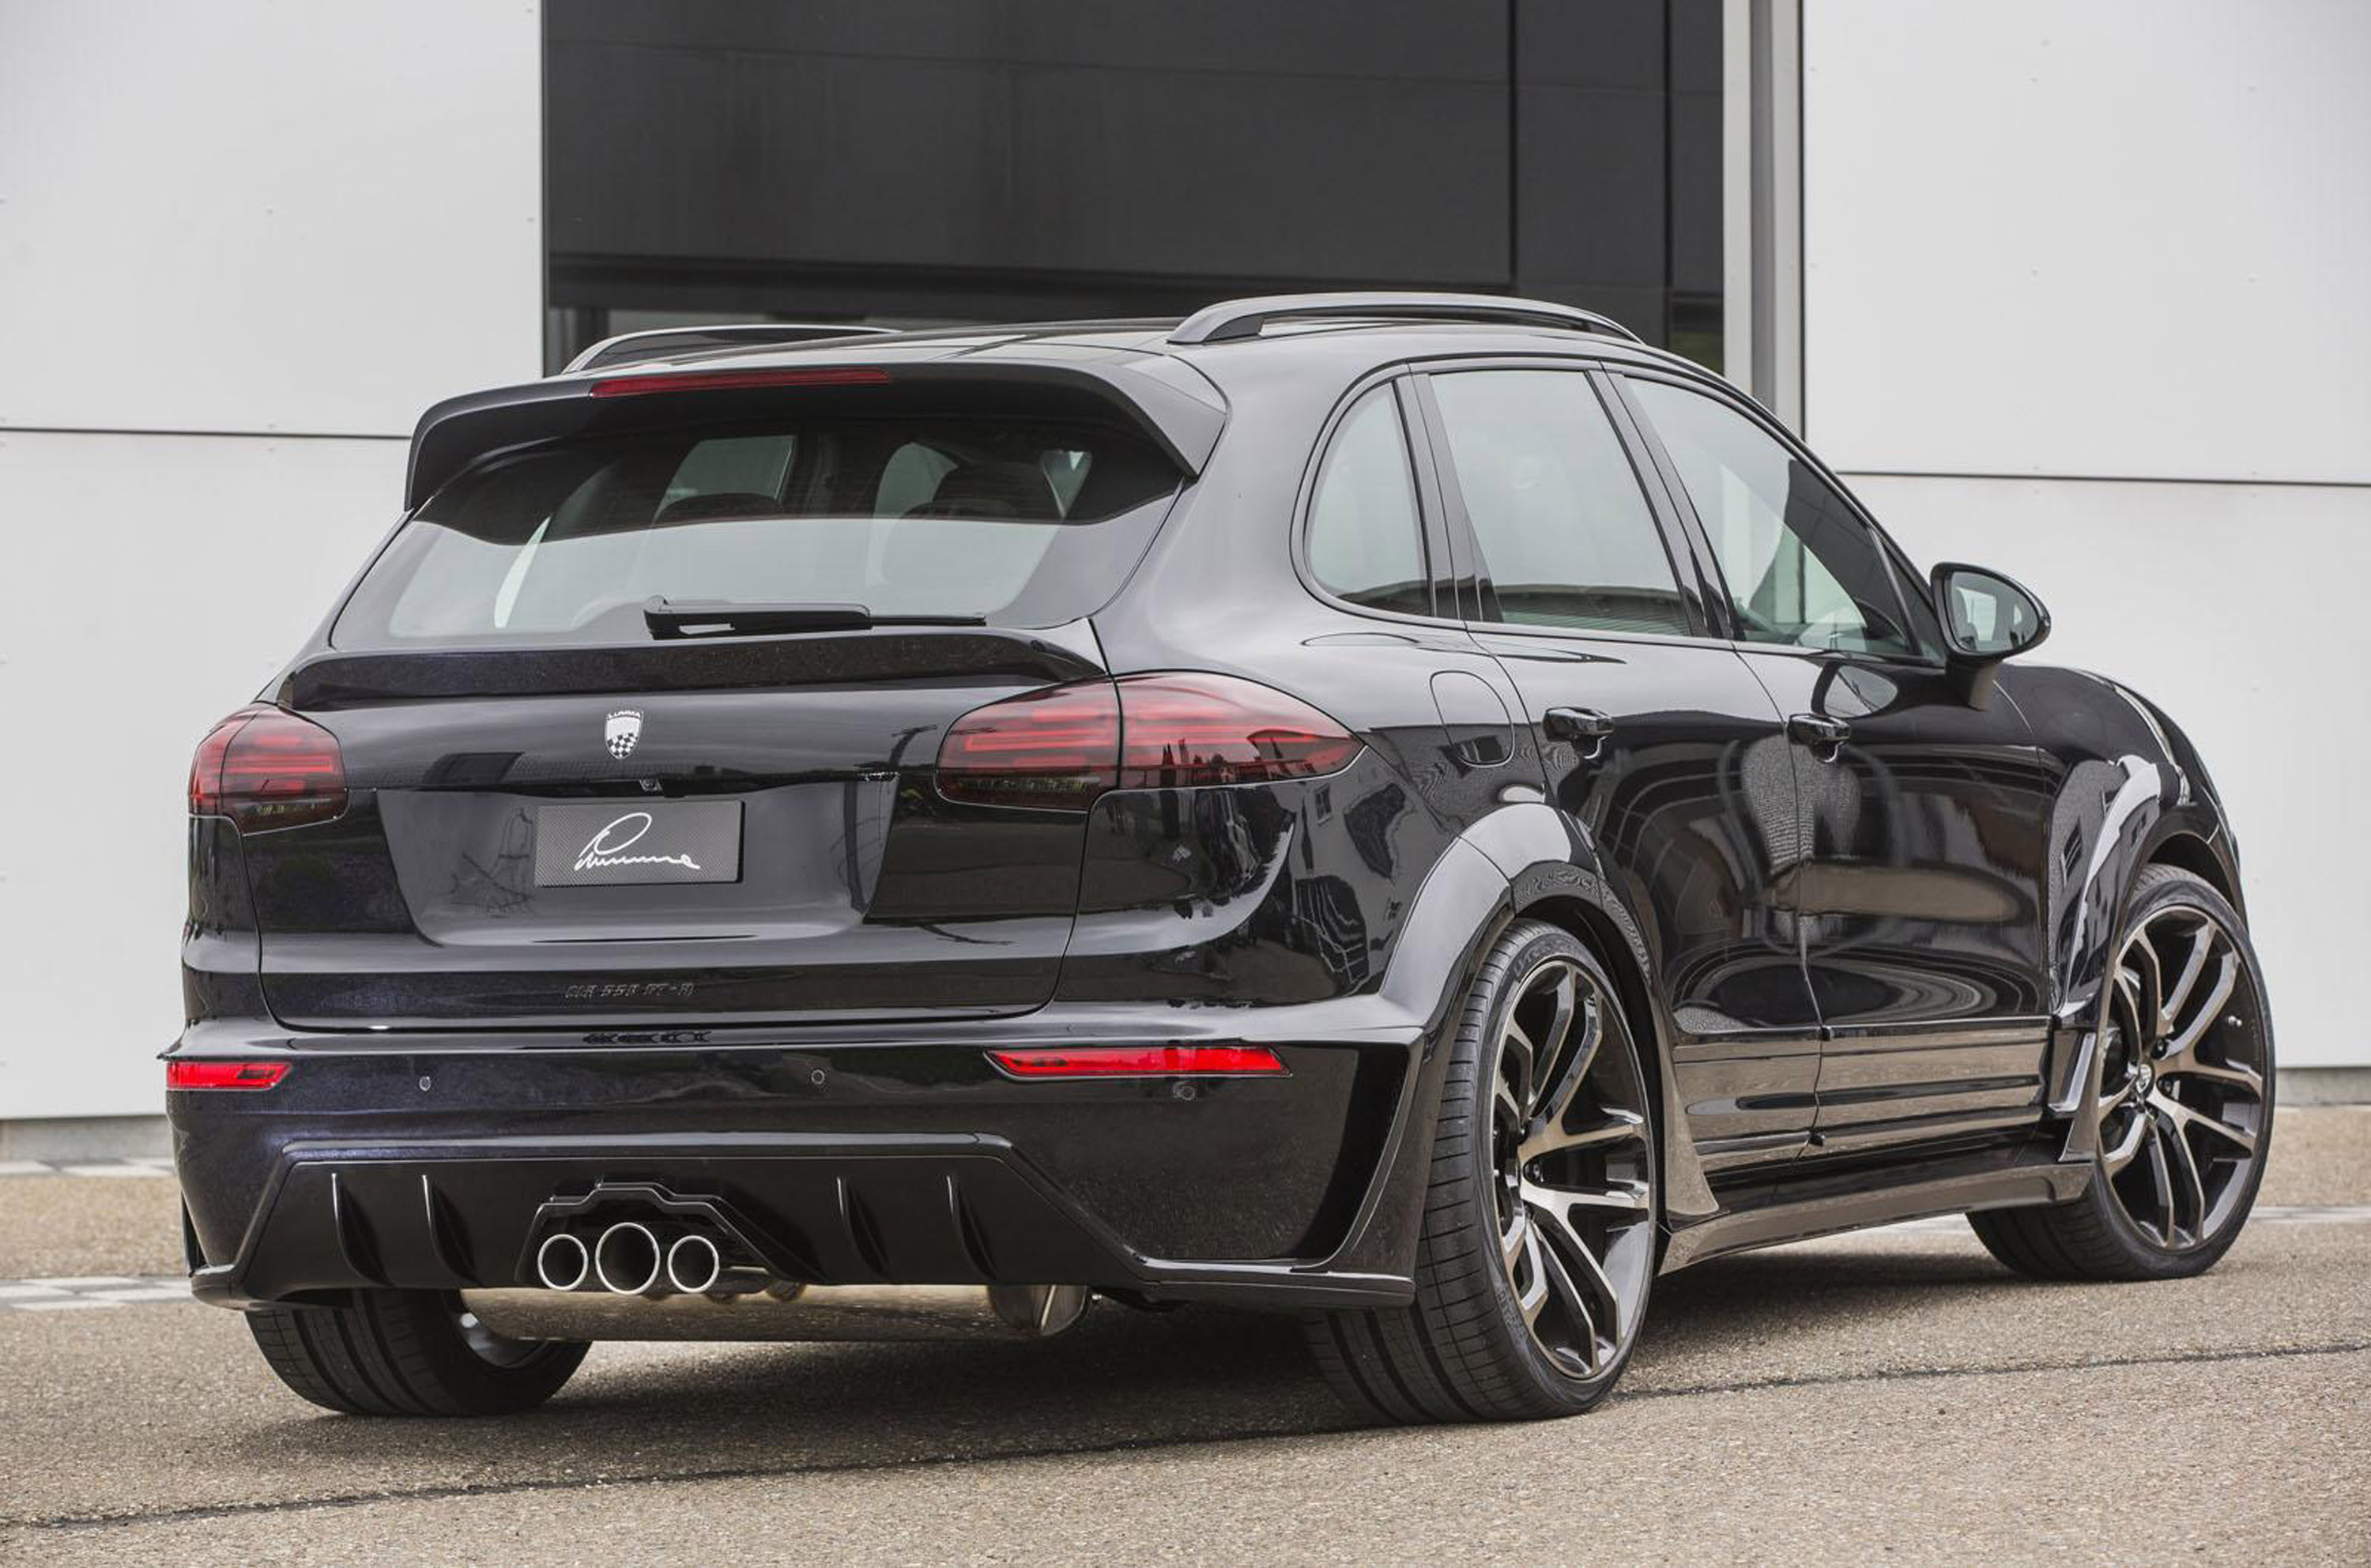 LUMMA Design Porsche Cayenne received numerous upgrades